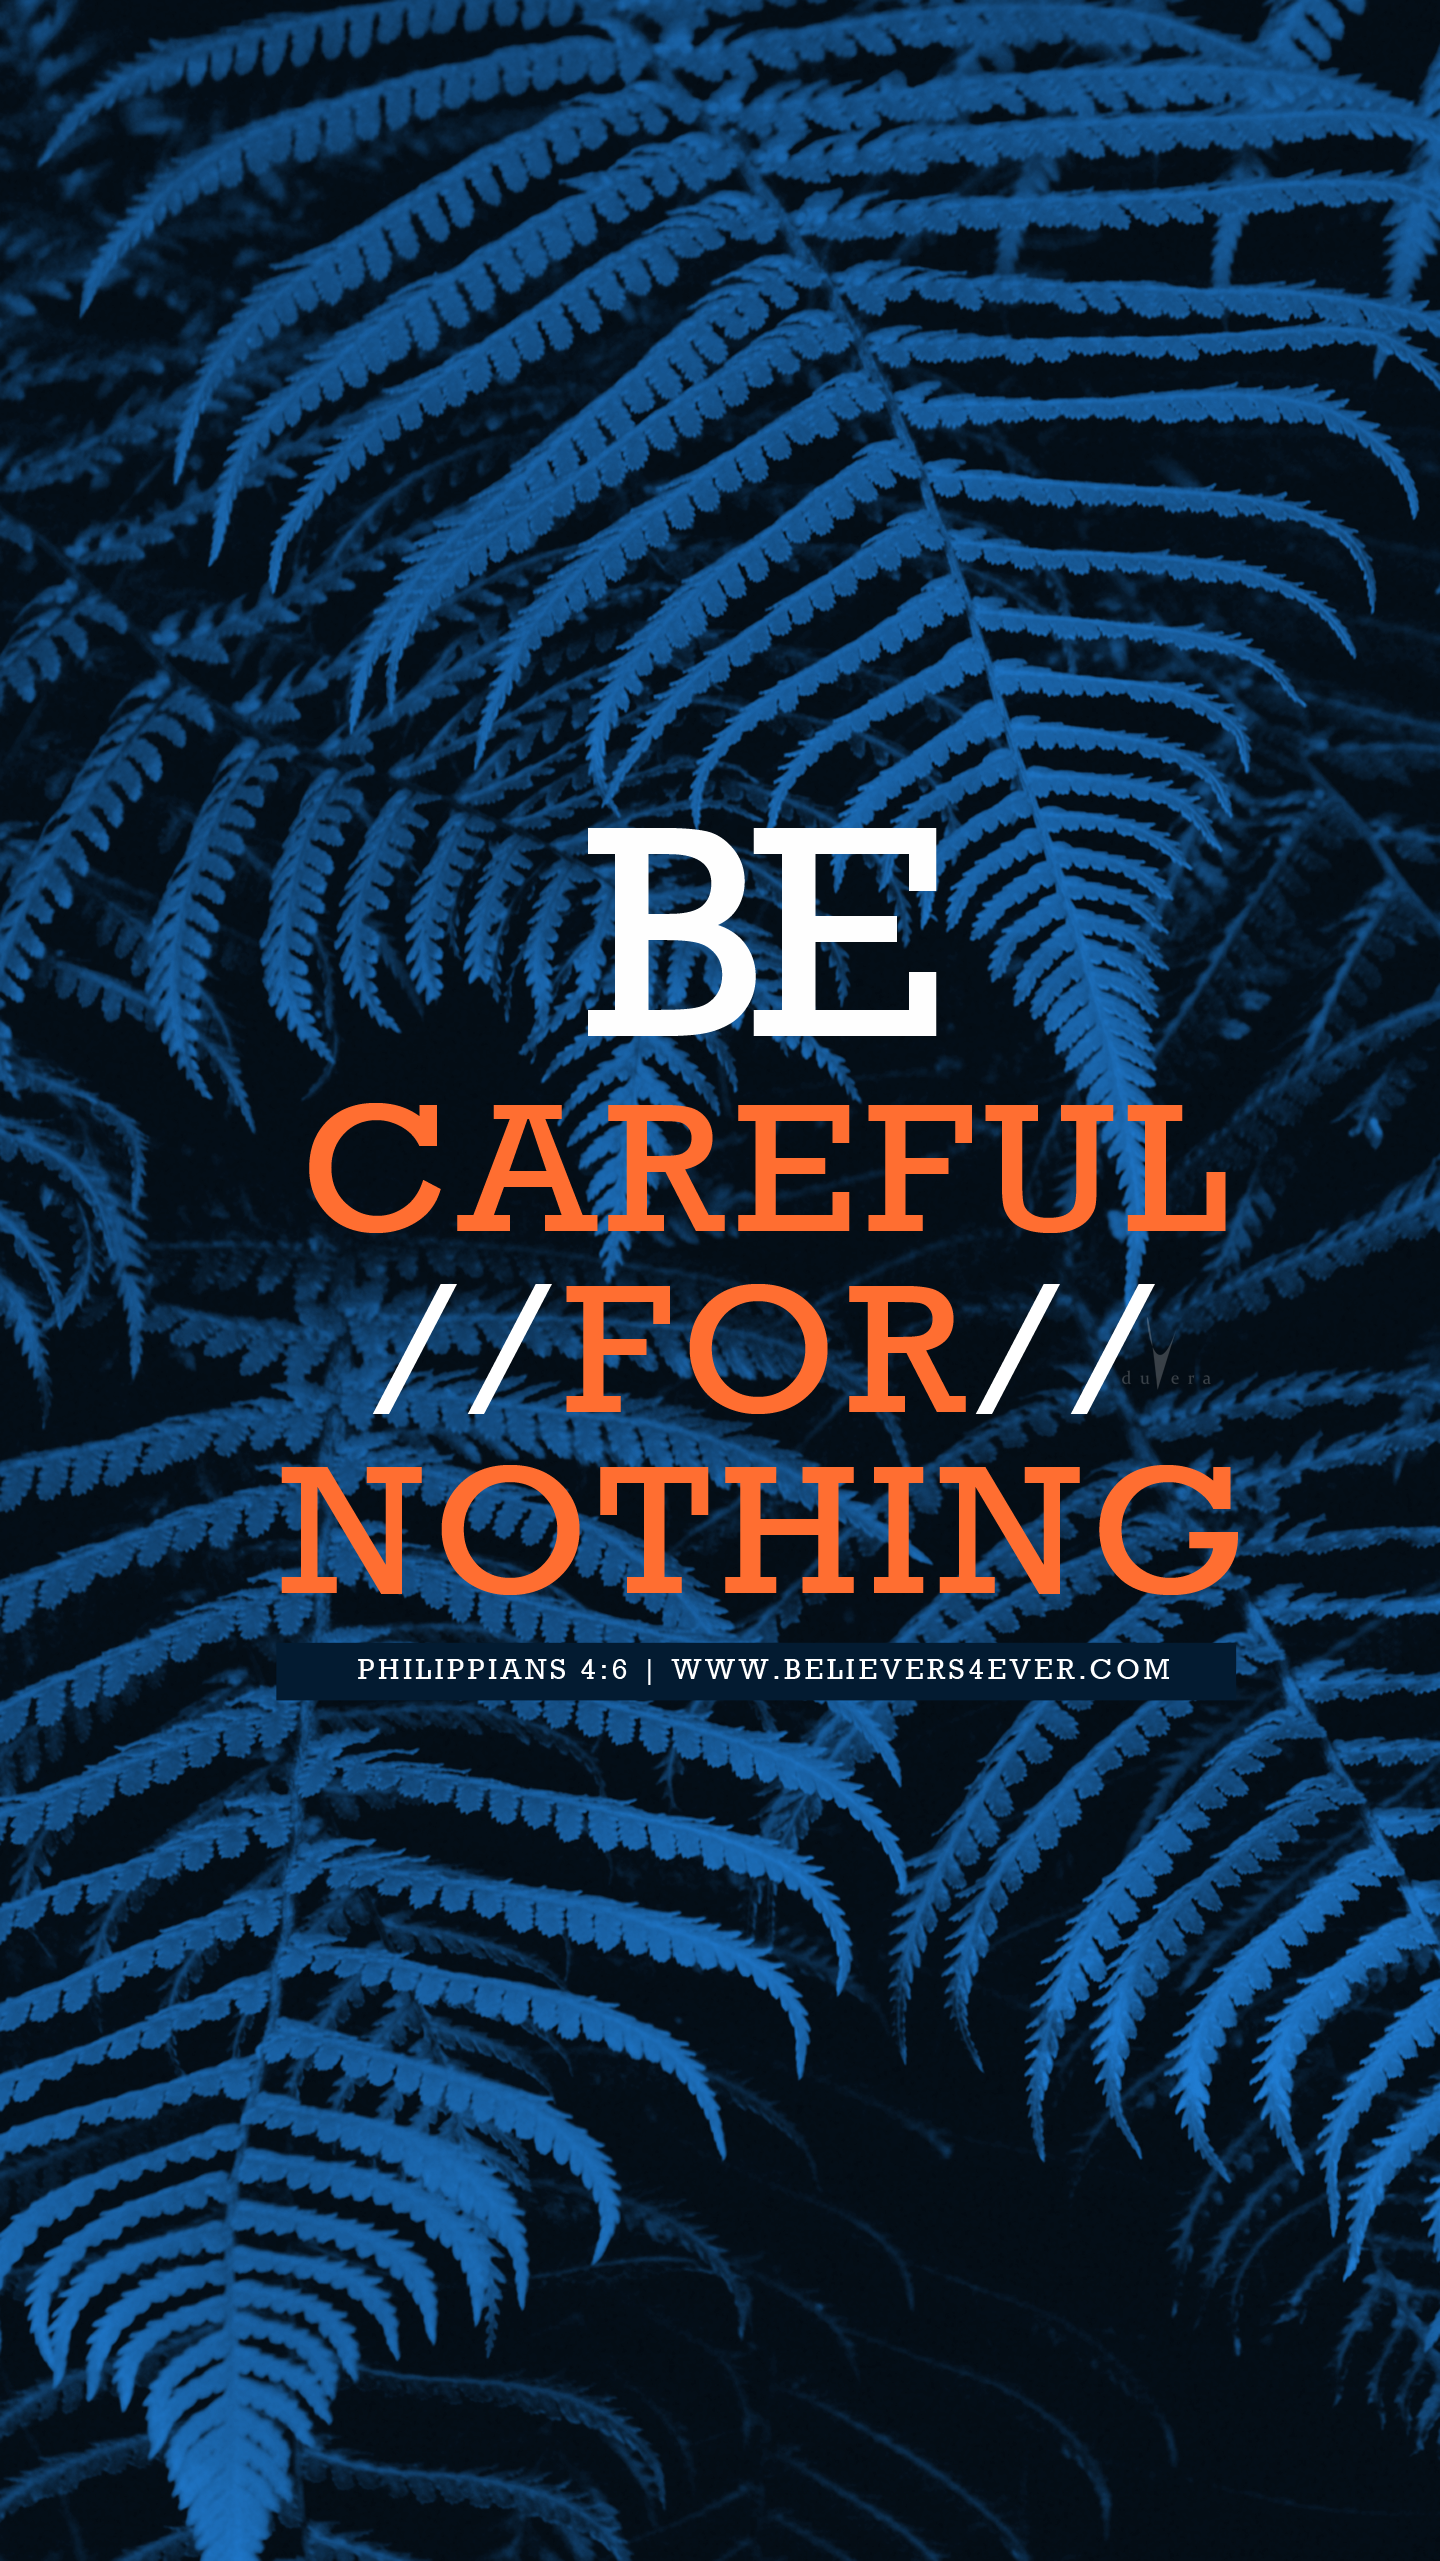 Be careful for nothing Free Christian mobile wallpaper. Philippians 4:6